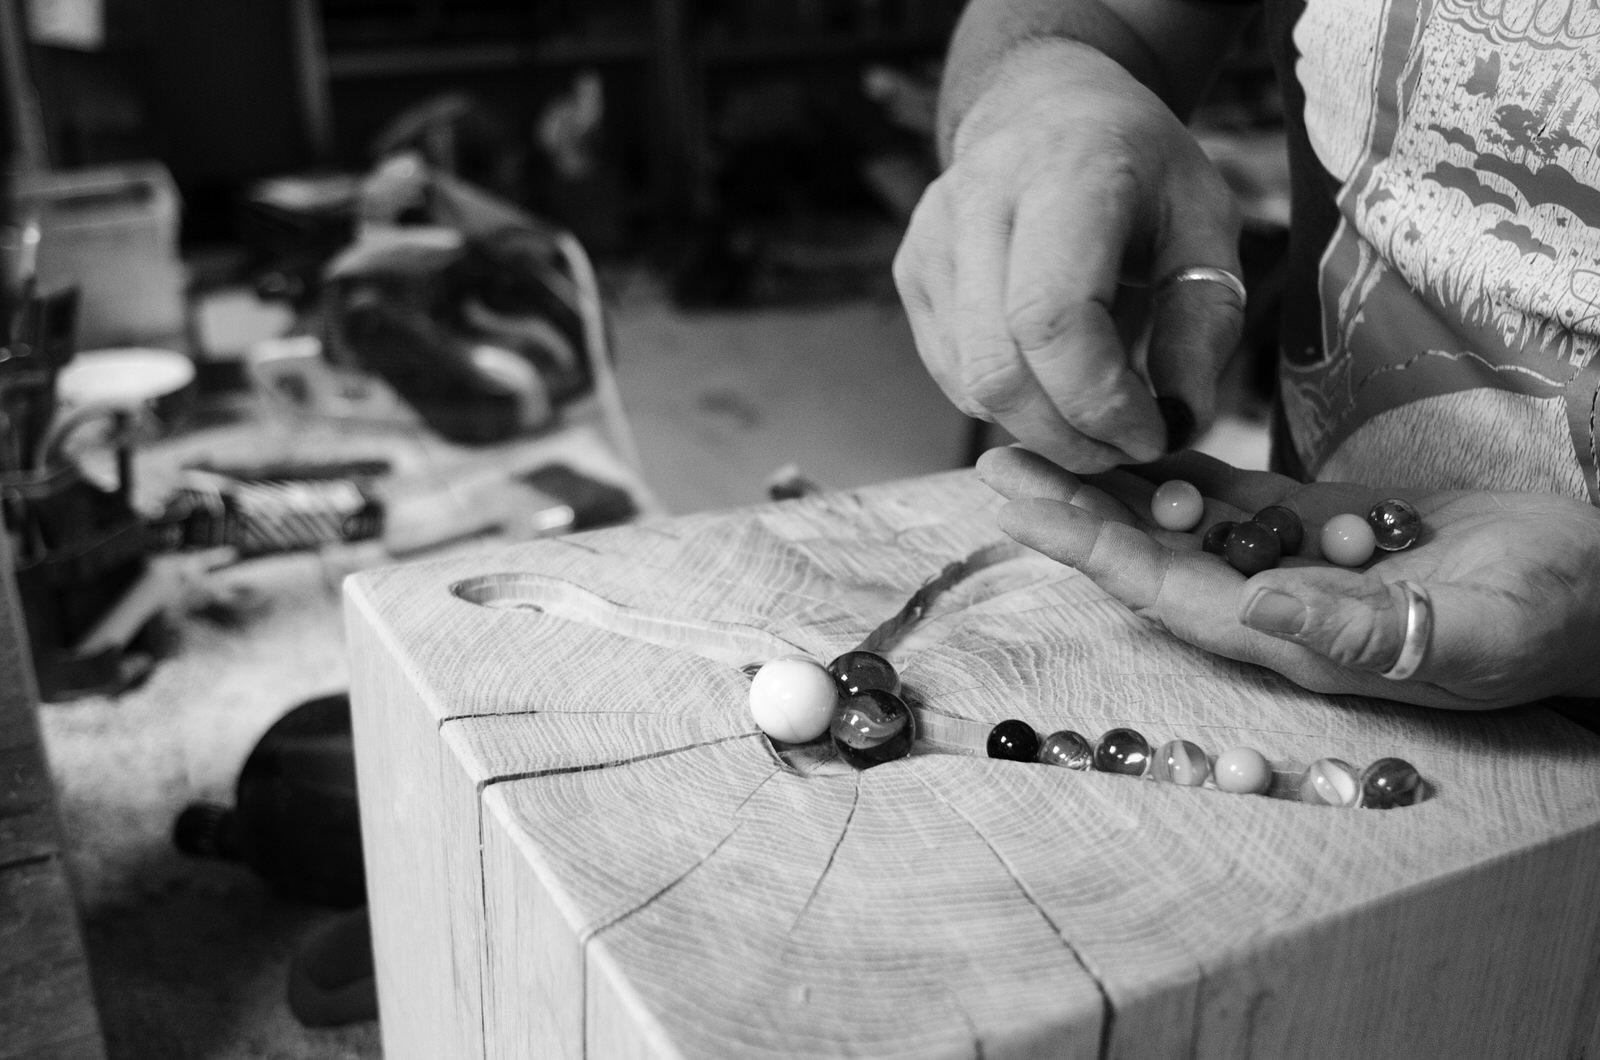 Preparing the Oak stool for casting with hand made marbles